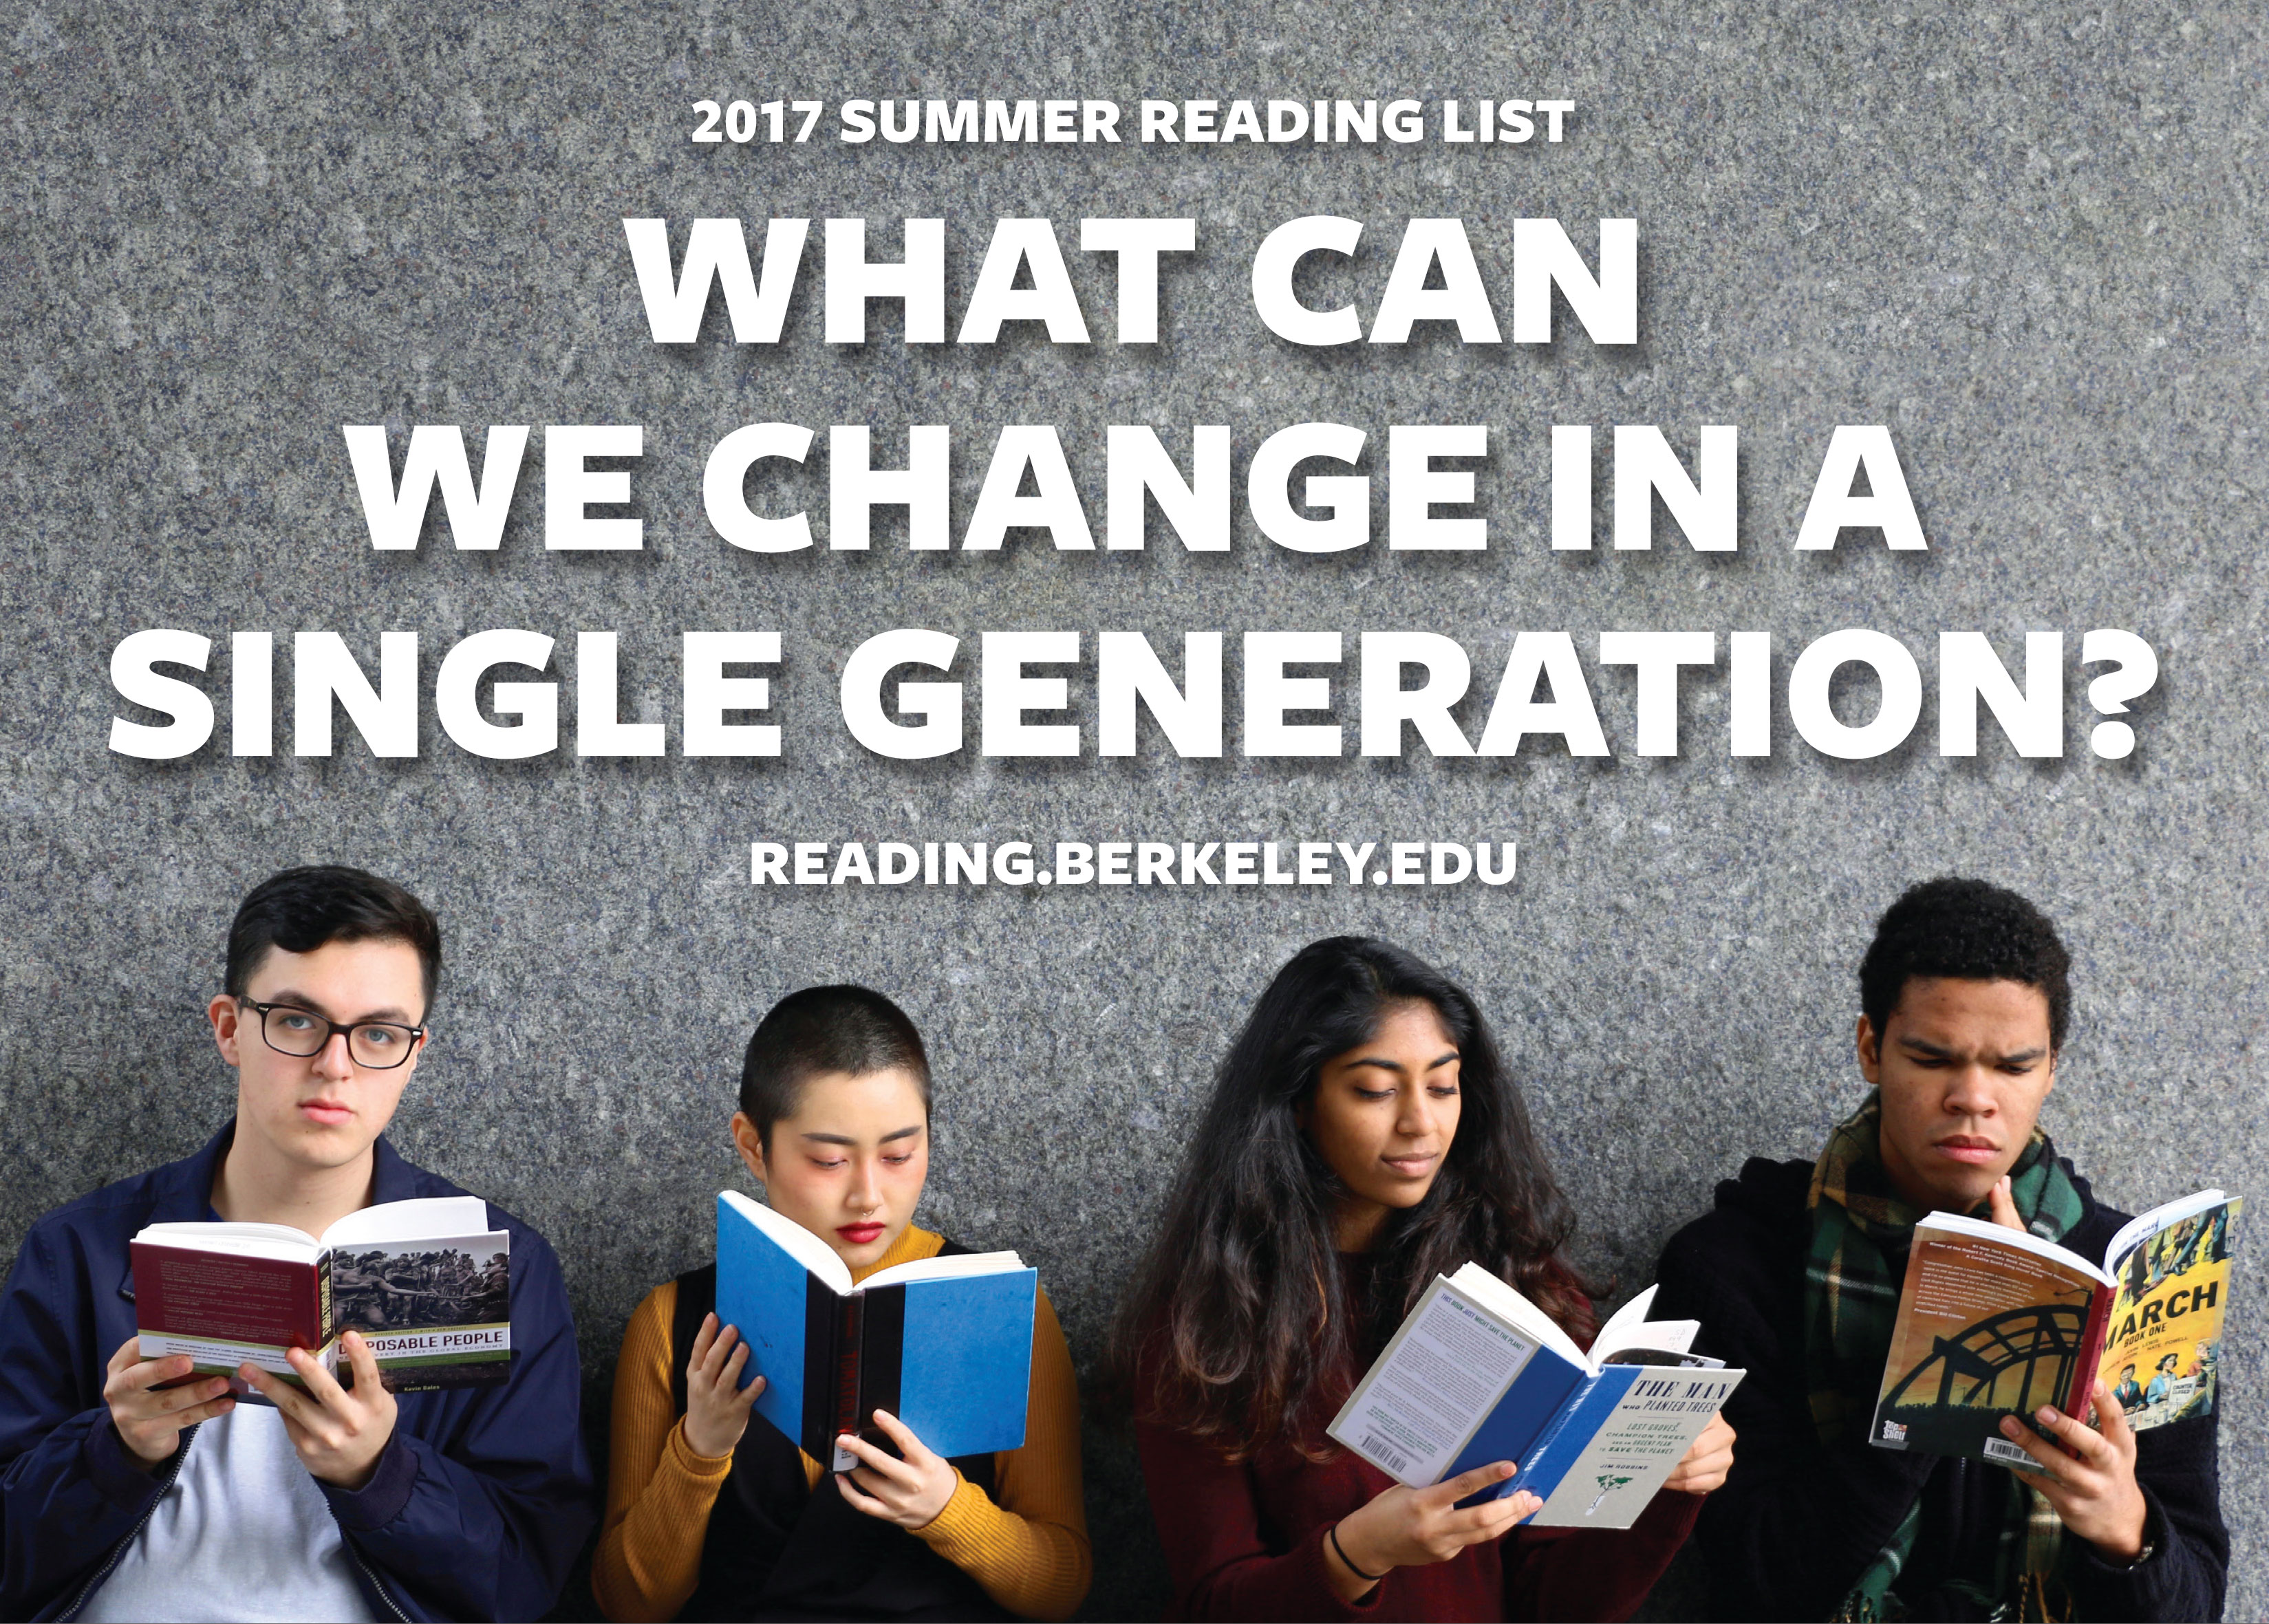 UC Berkeley 2017 Summer Reading List What Can We Change in a Single Generation?